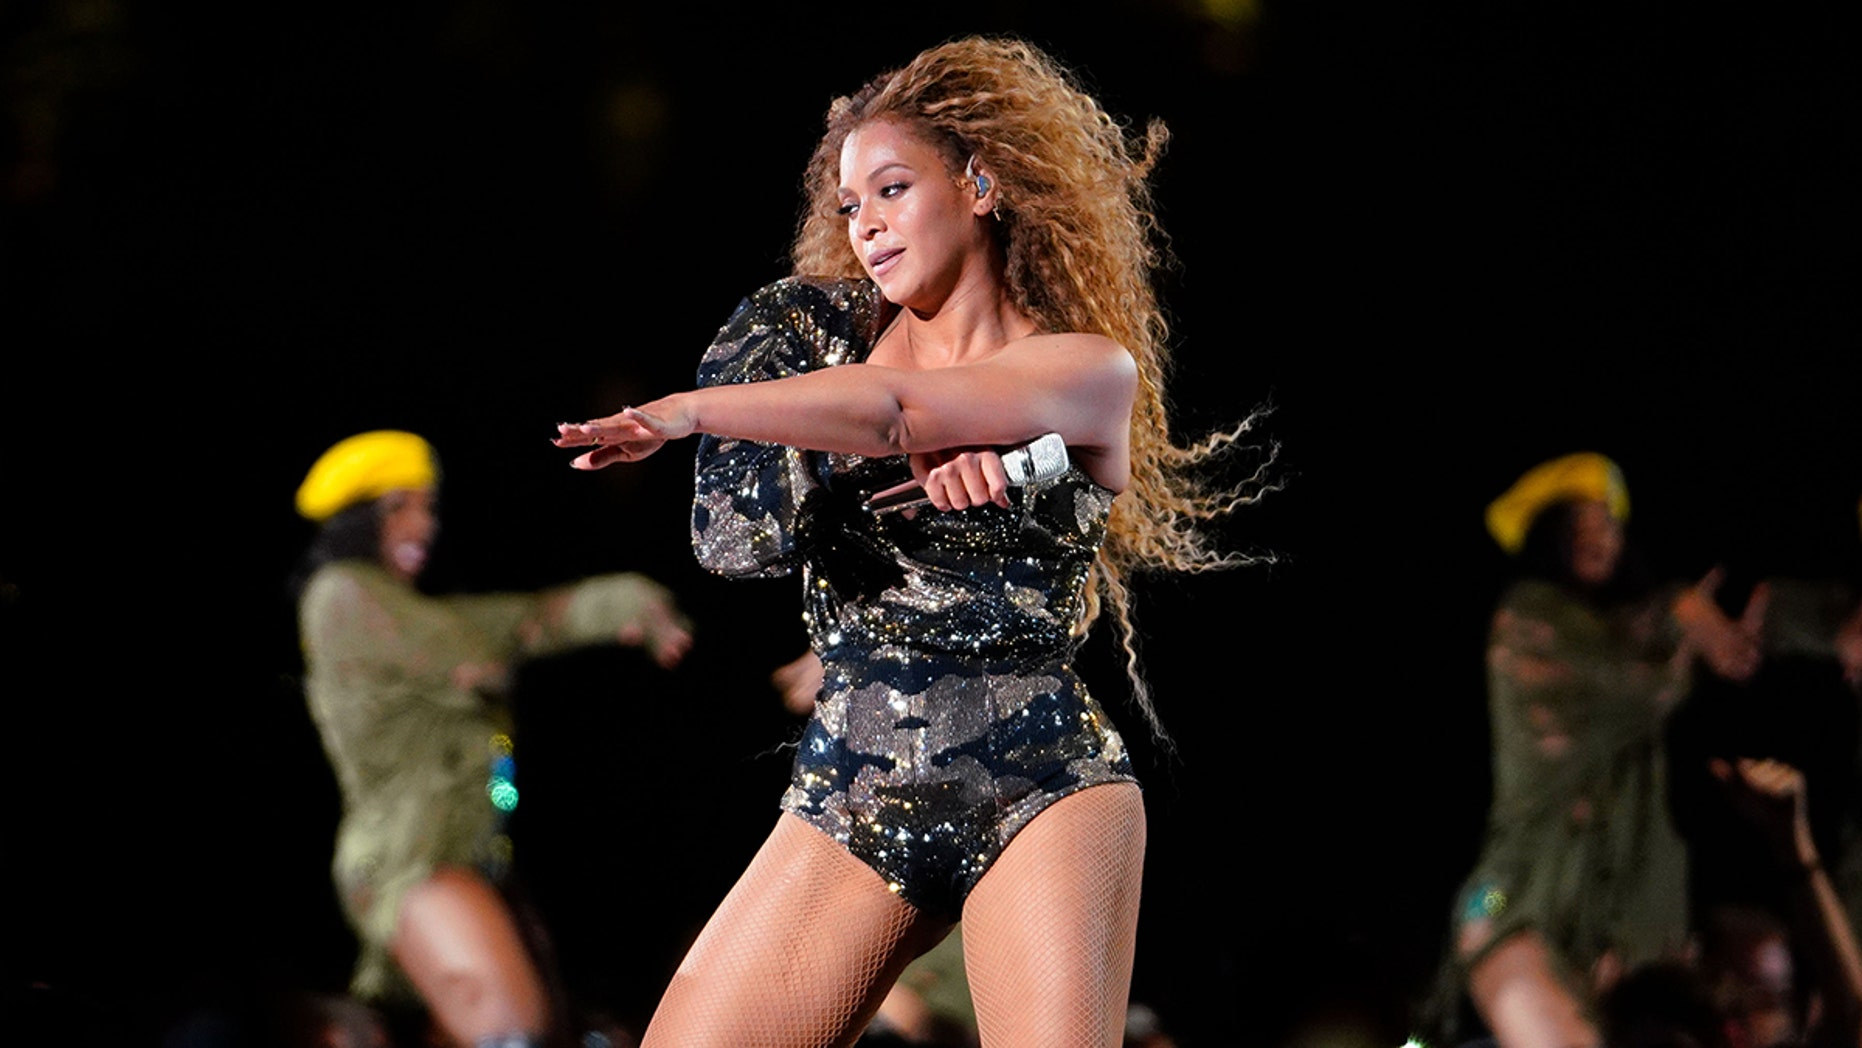 Beyonce, pictured here during her Coachella performance, recently had to endure a technical difficulty that left her stranded on stage during a concert with Jay-Z.